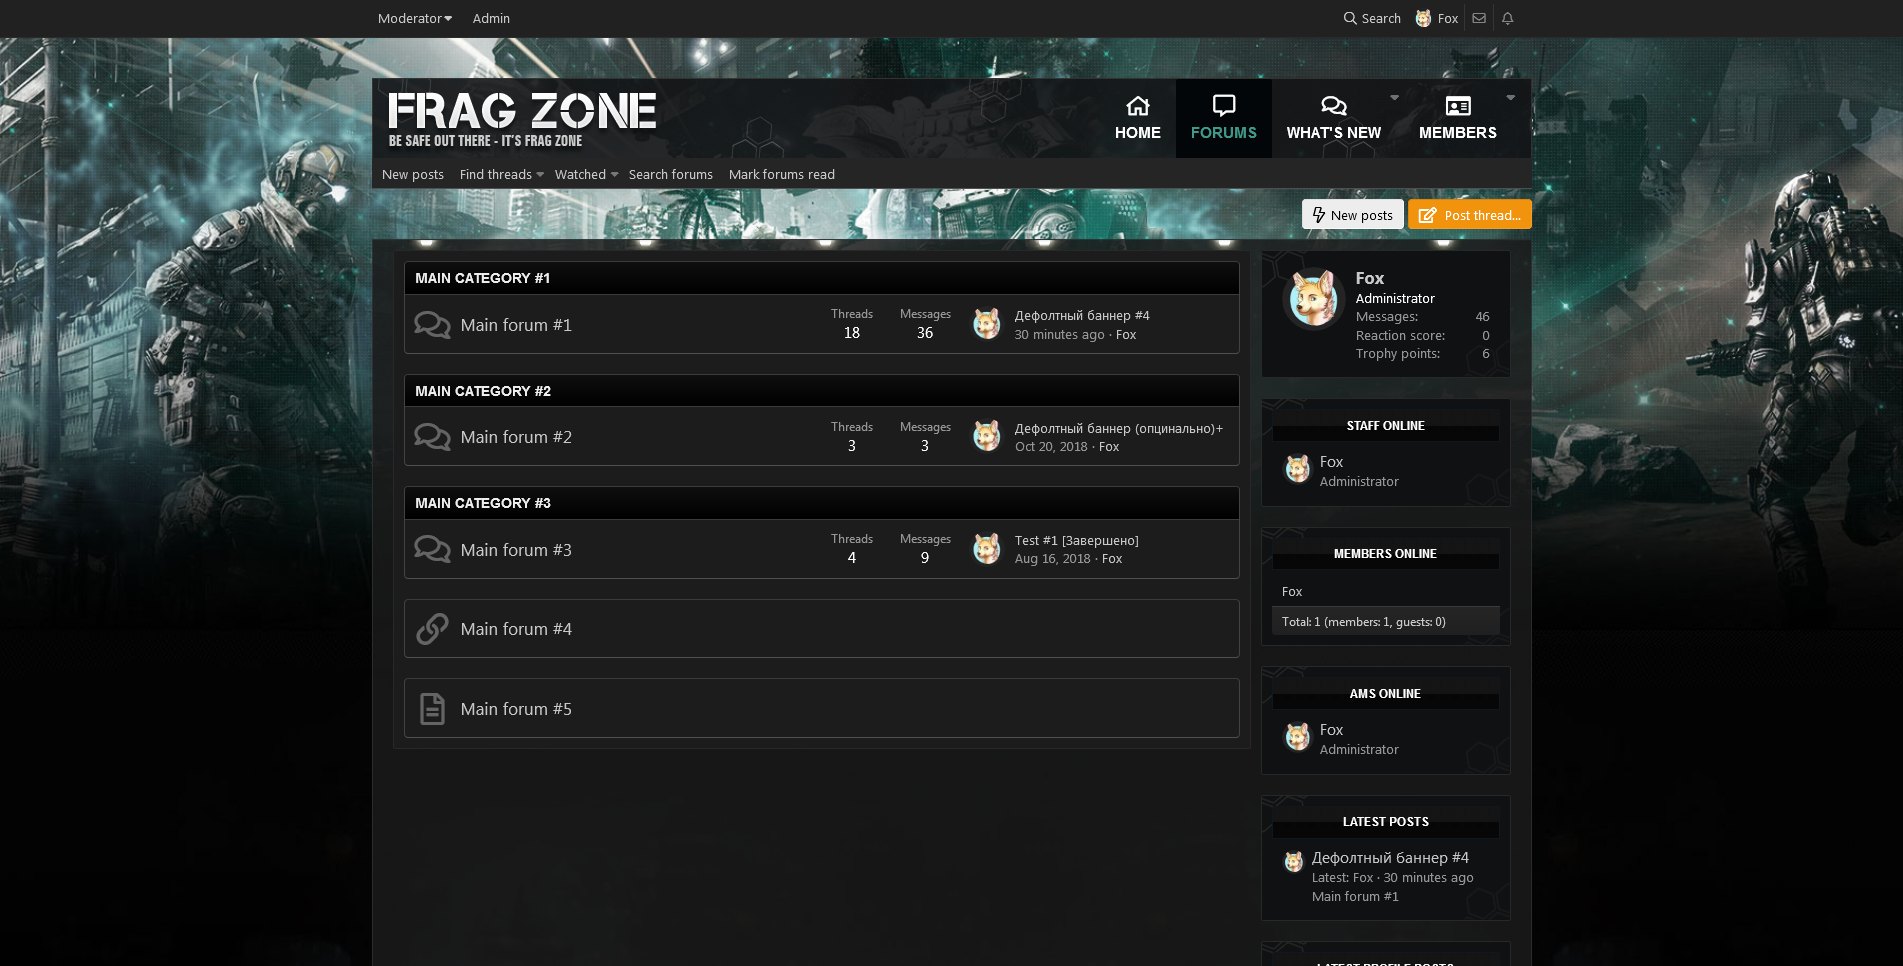 FRAG ZONE 2.1.2.0 FOR XENFORO 2.png